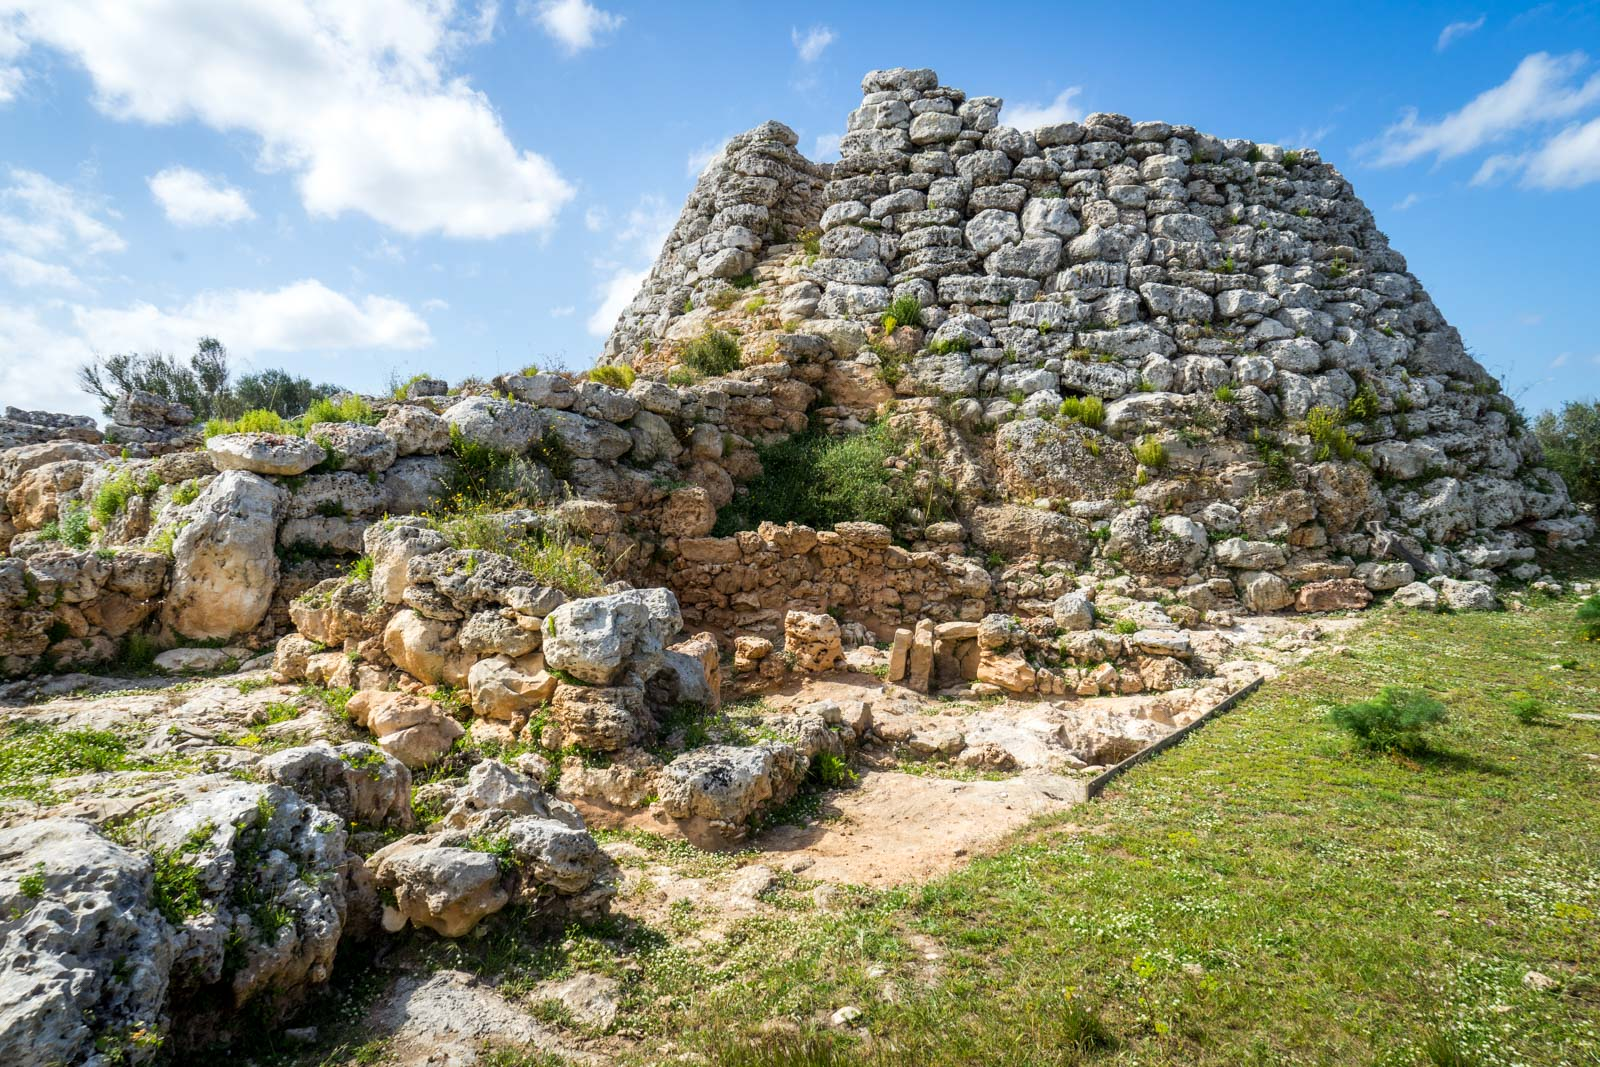 Talaiotic sites and culture, Menorca, Spain